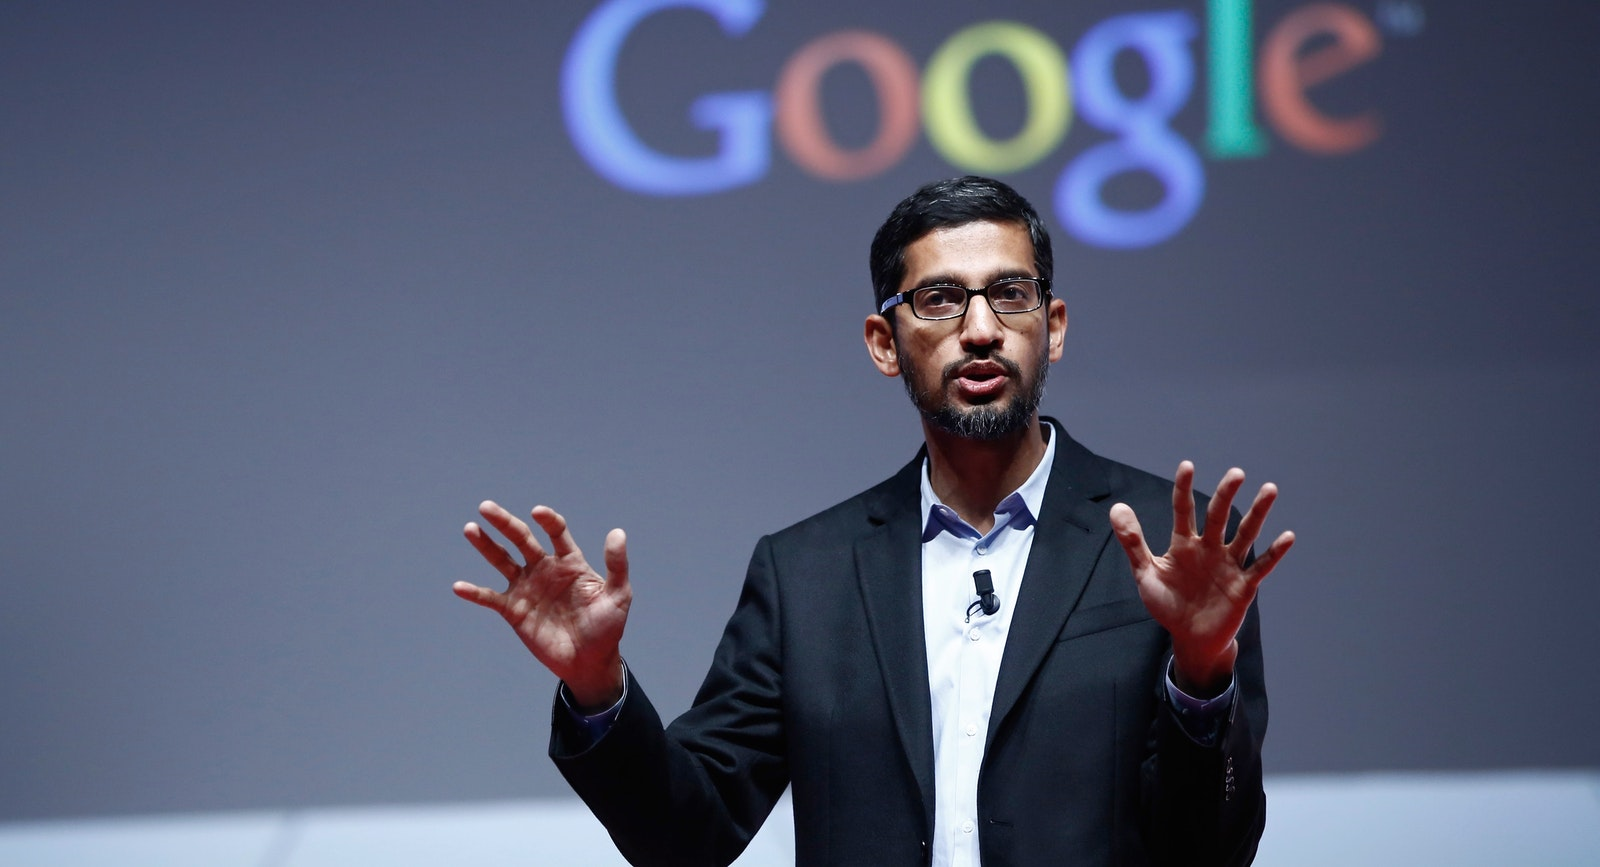 Google SVP Sundar Pichai, who oversees Android and Google Play. Photo by Bloomberg.